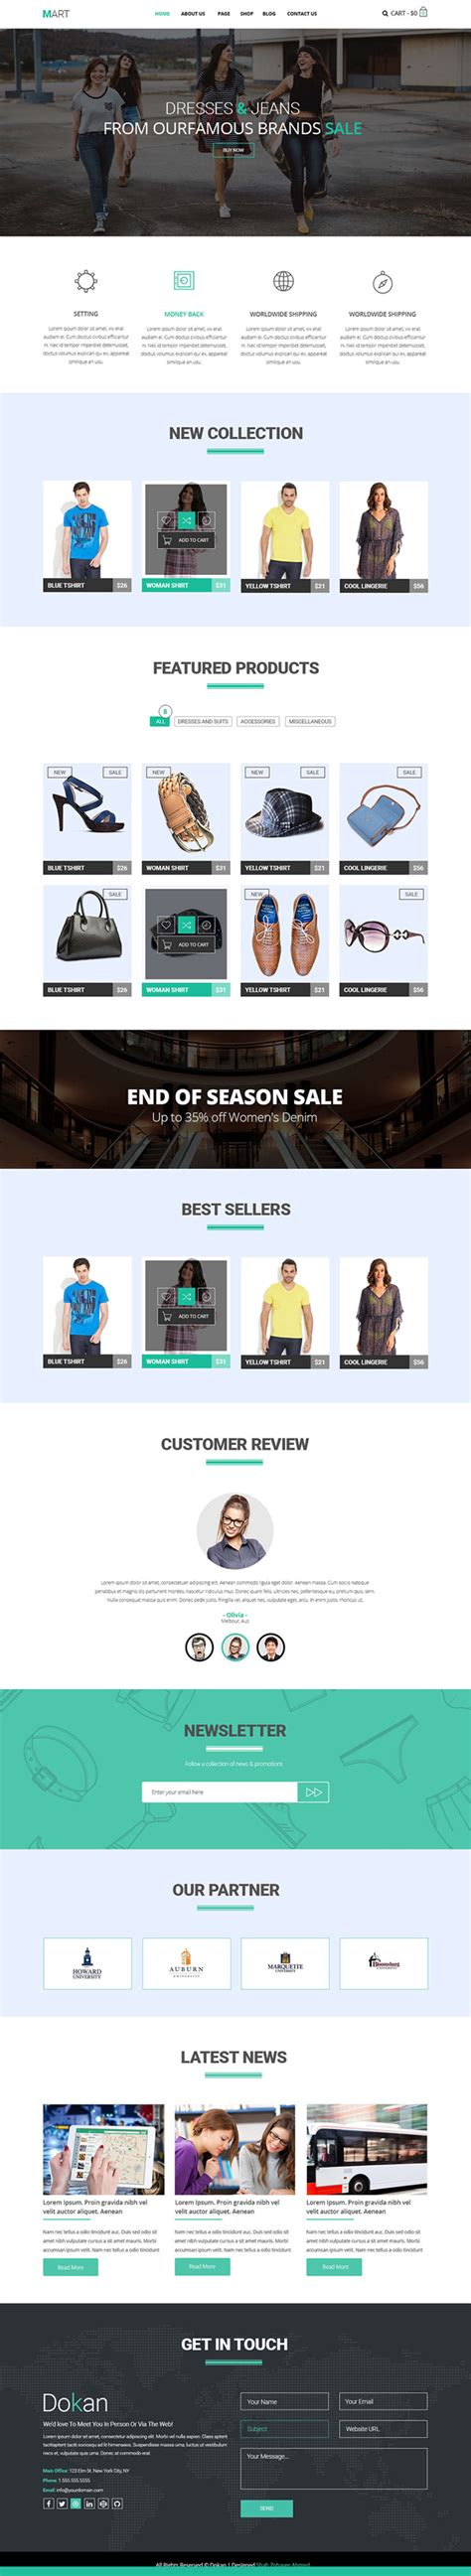 15 Free Responsive Psd Website Templates Idevie Free Responsive Ecommerce Website Templates